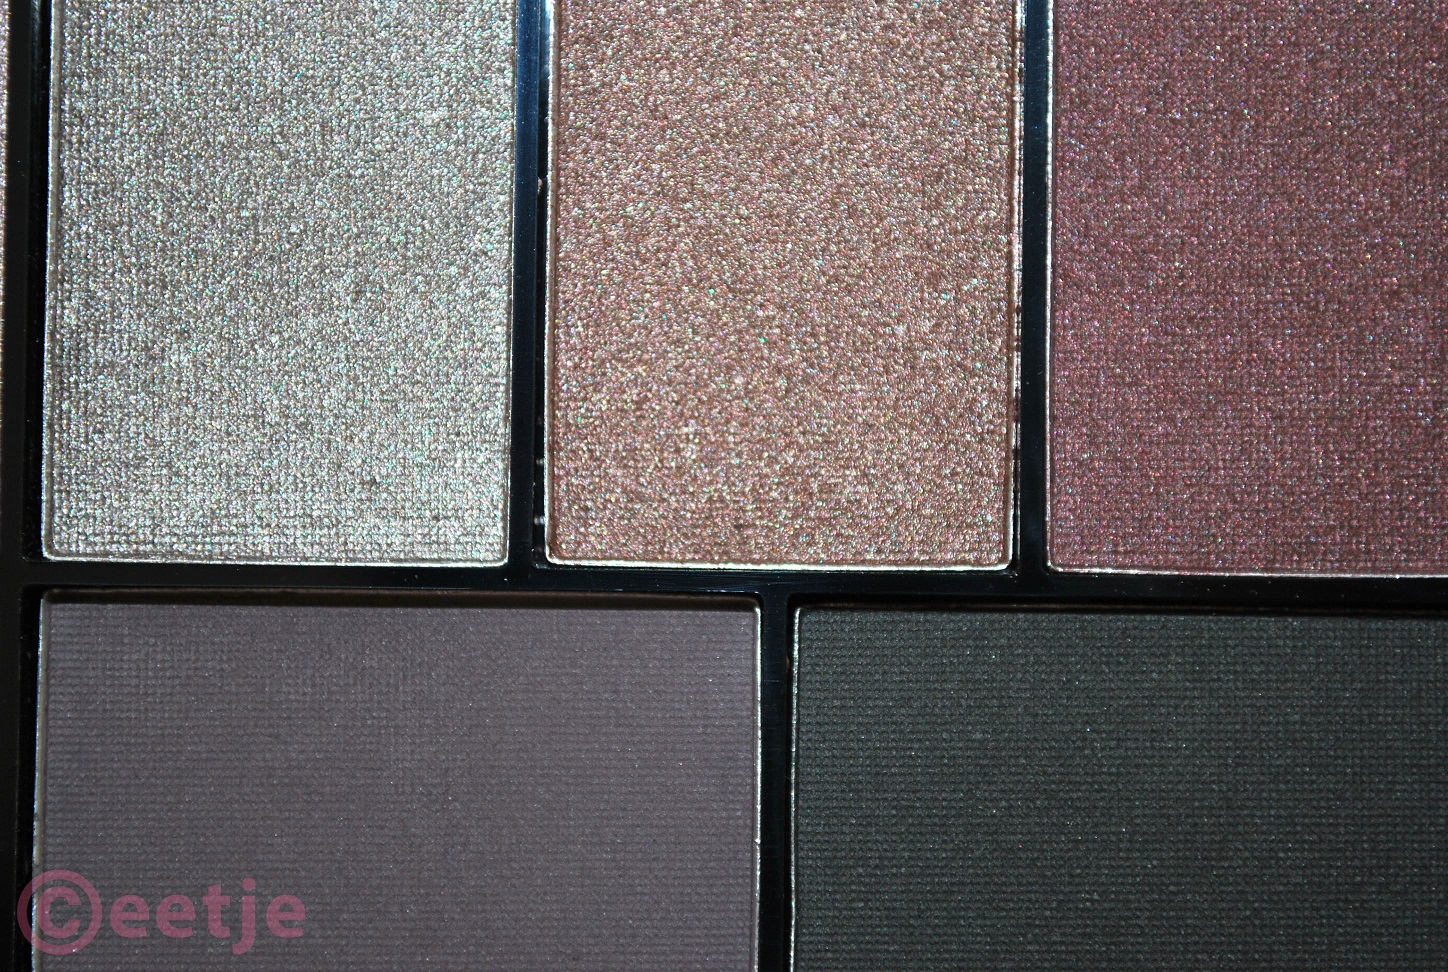 Review colors MUA Luxe eyeshdaow palette pretty edgy spikes